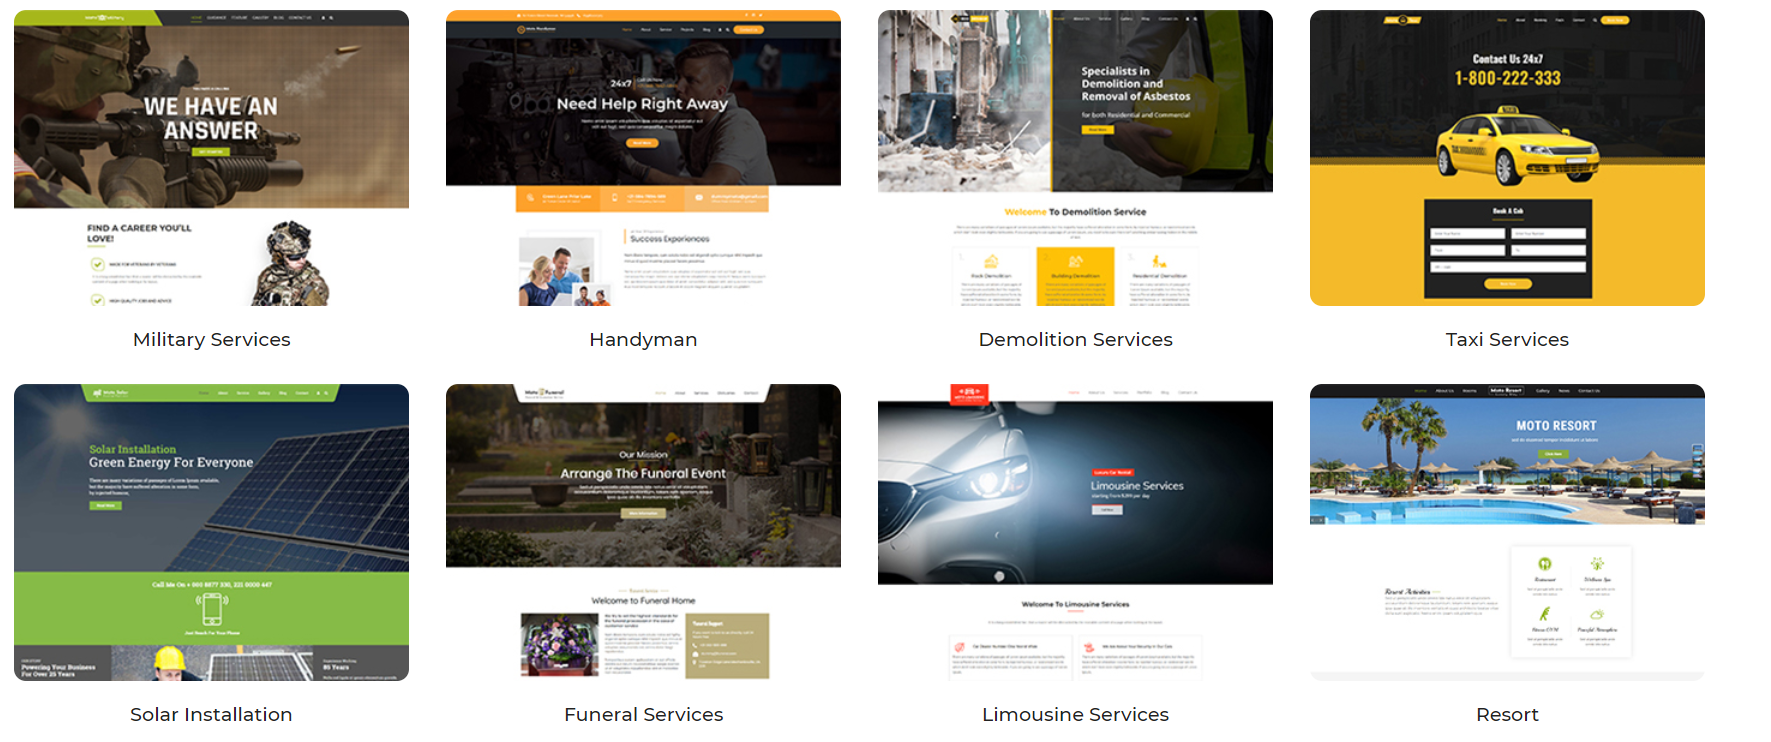 PRODUCTS AND SERVICES 8